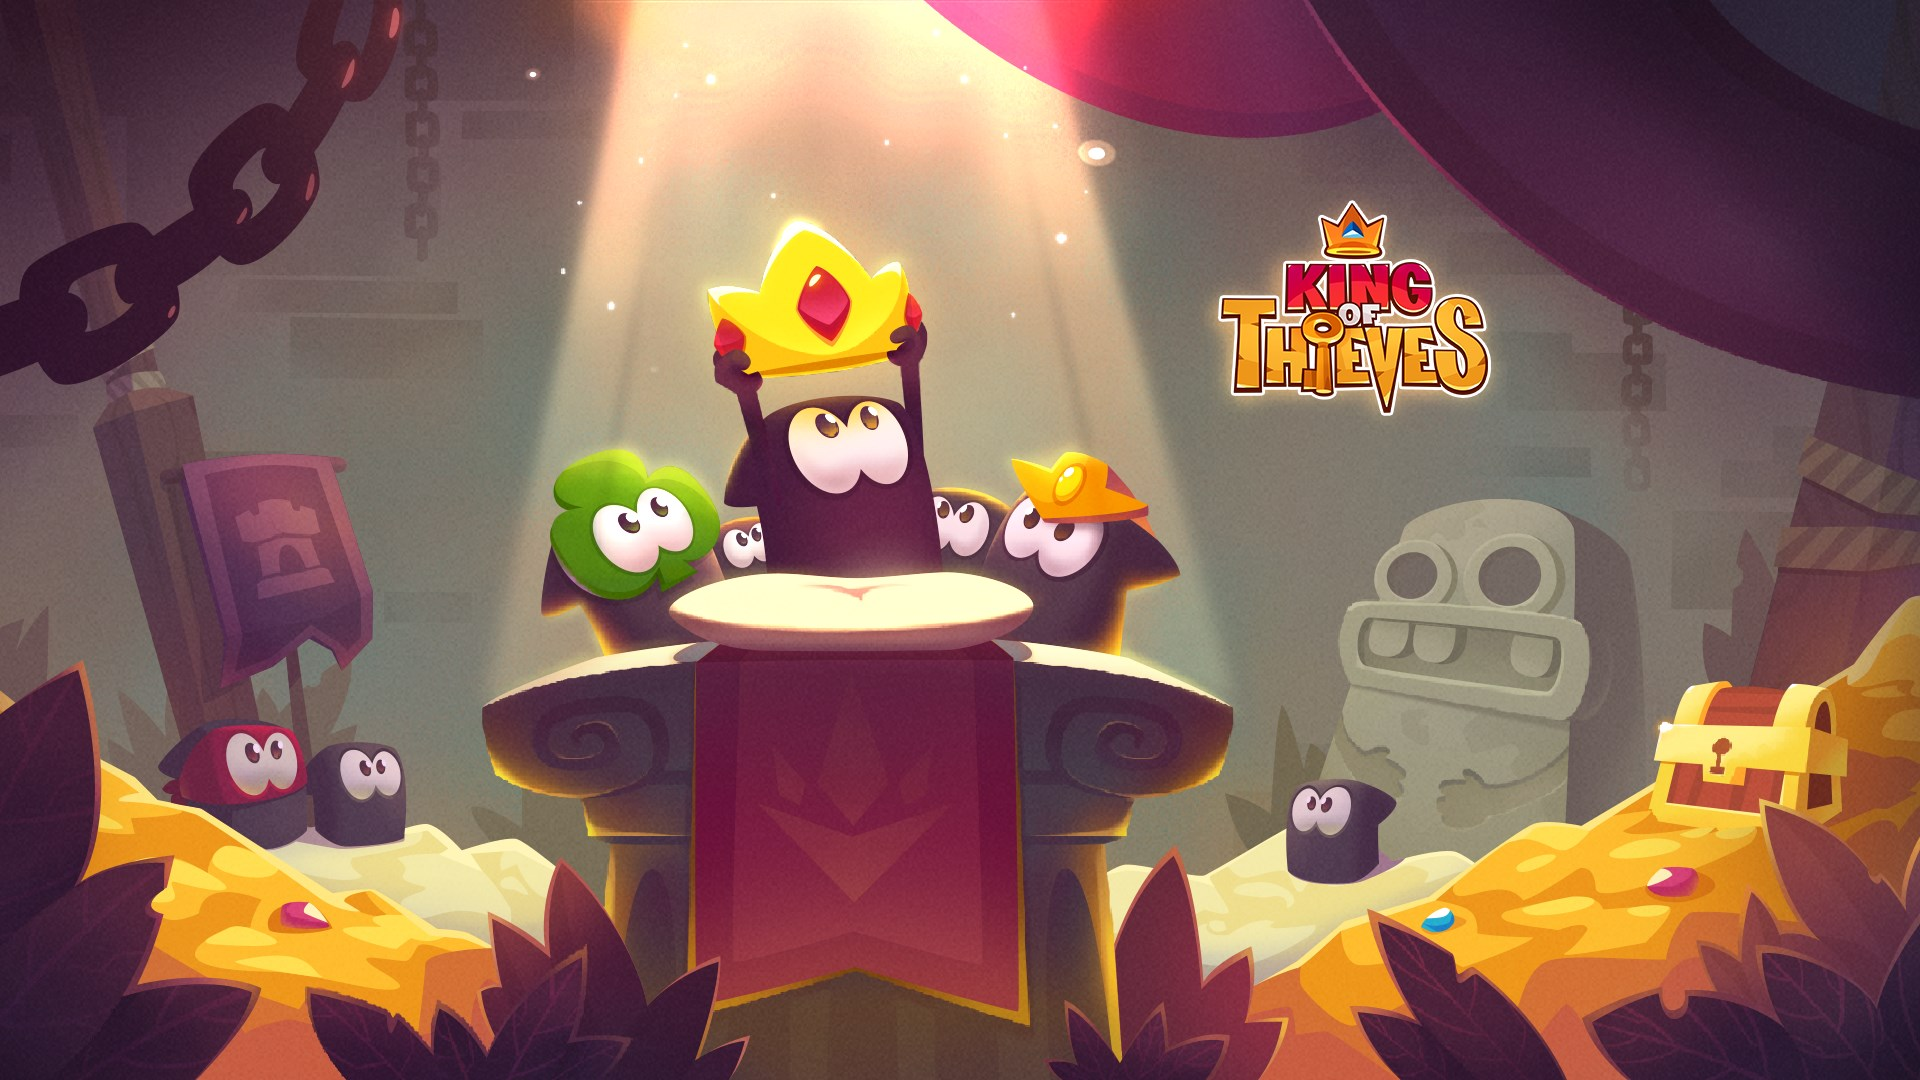 king of thieves apk mod download